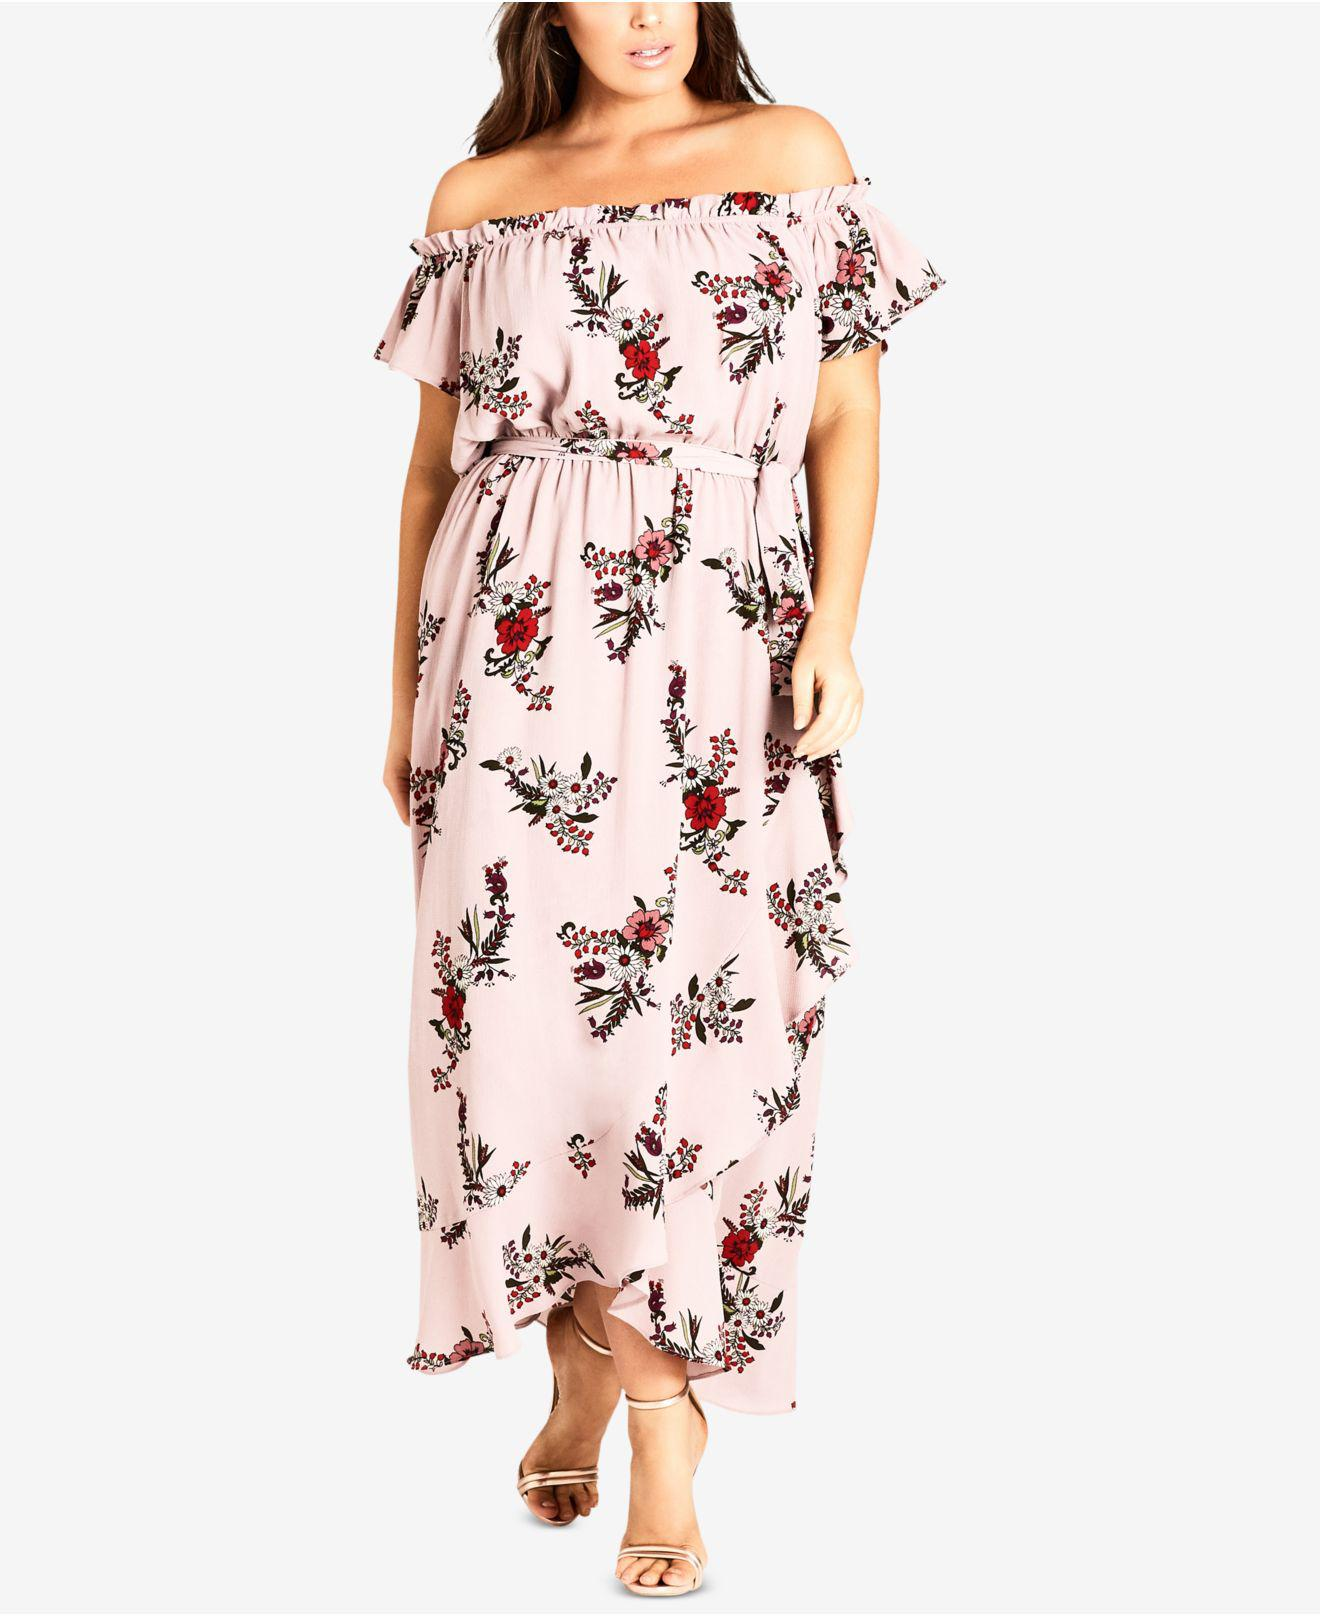 f011b360b97 Lyst - City Chic Trendy Plus Size Printed Off-the-shoulder Maxi ...